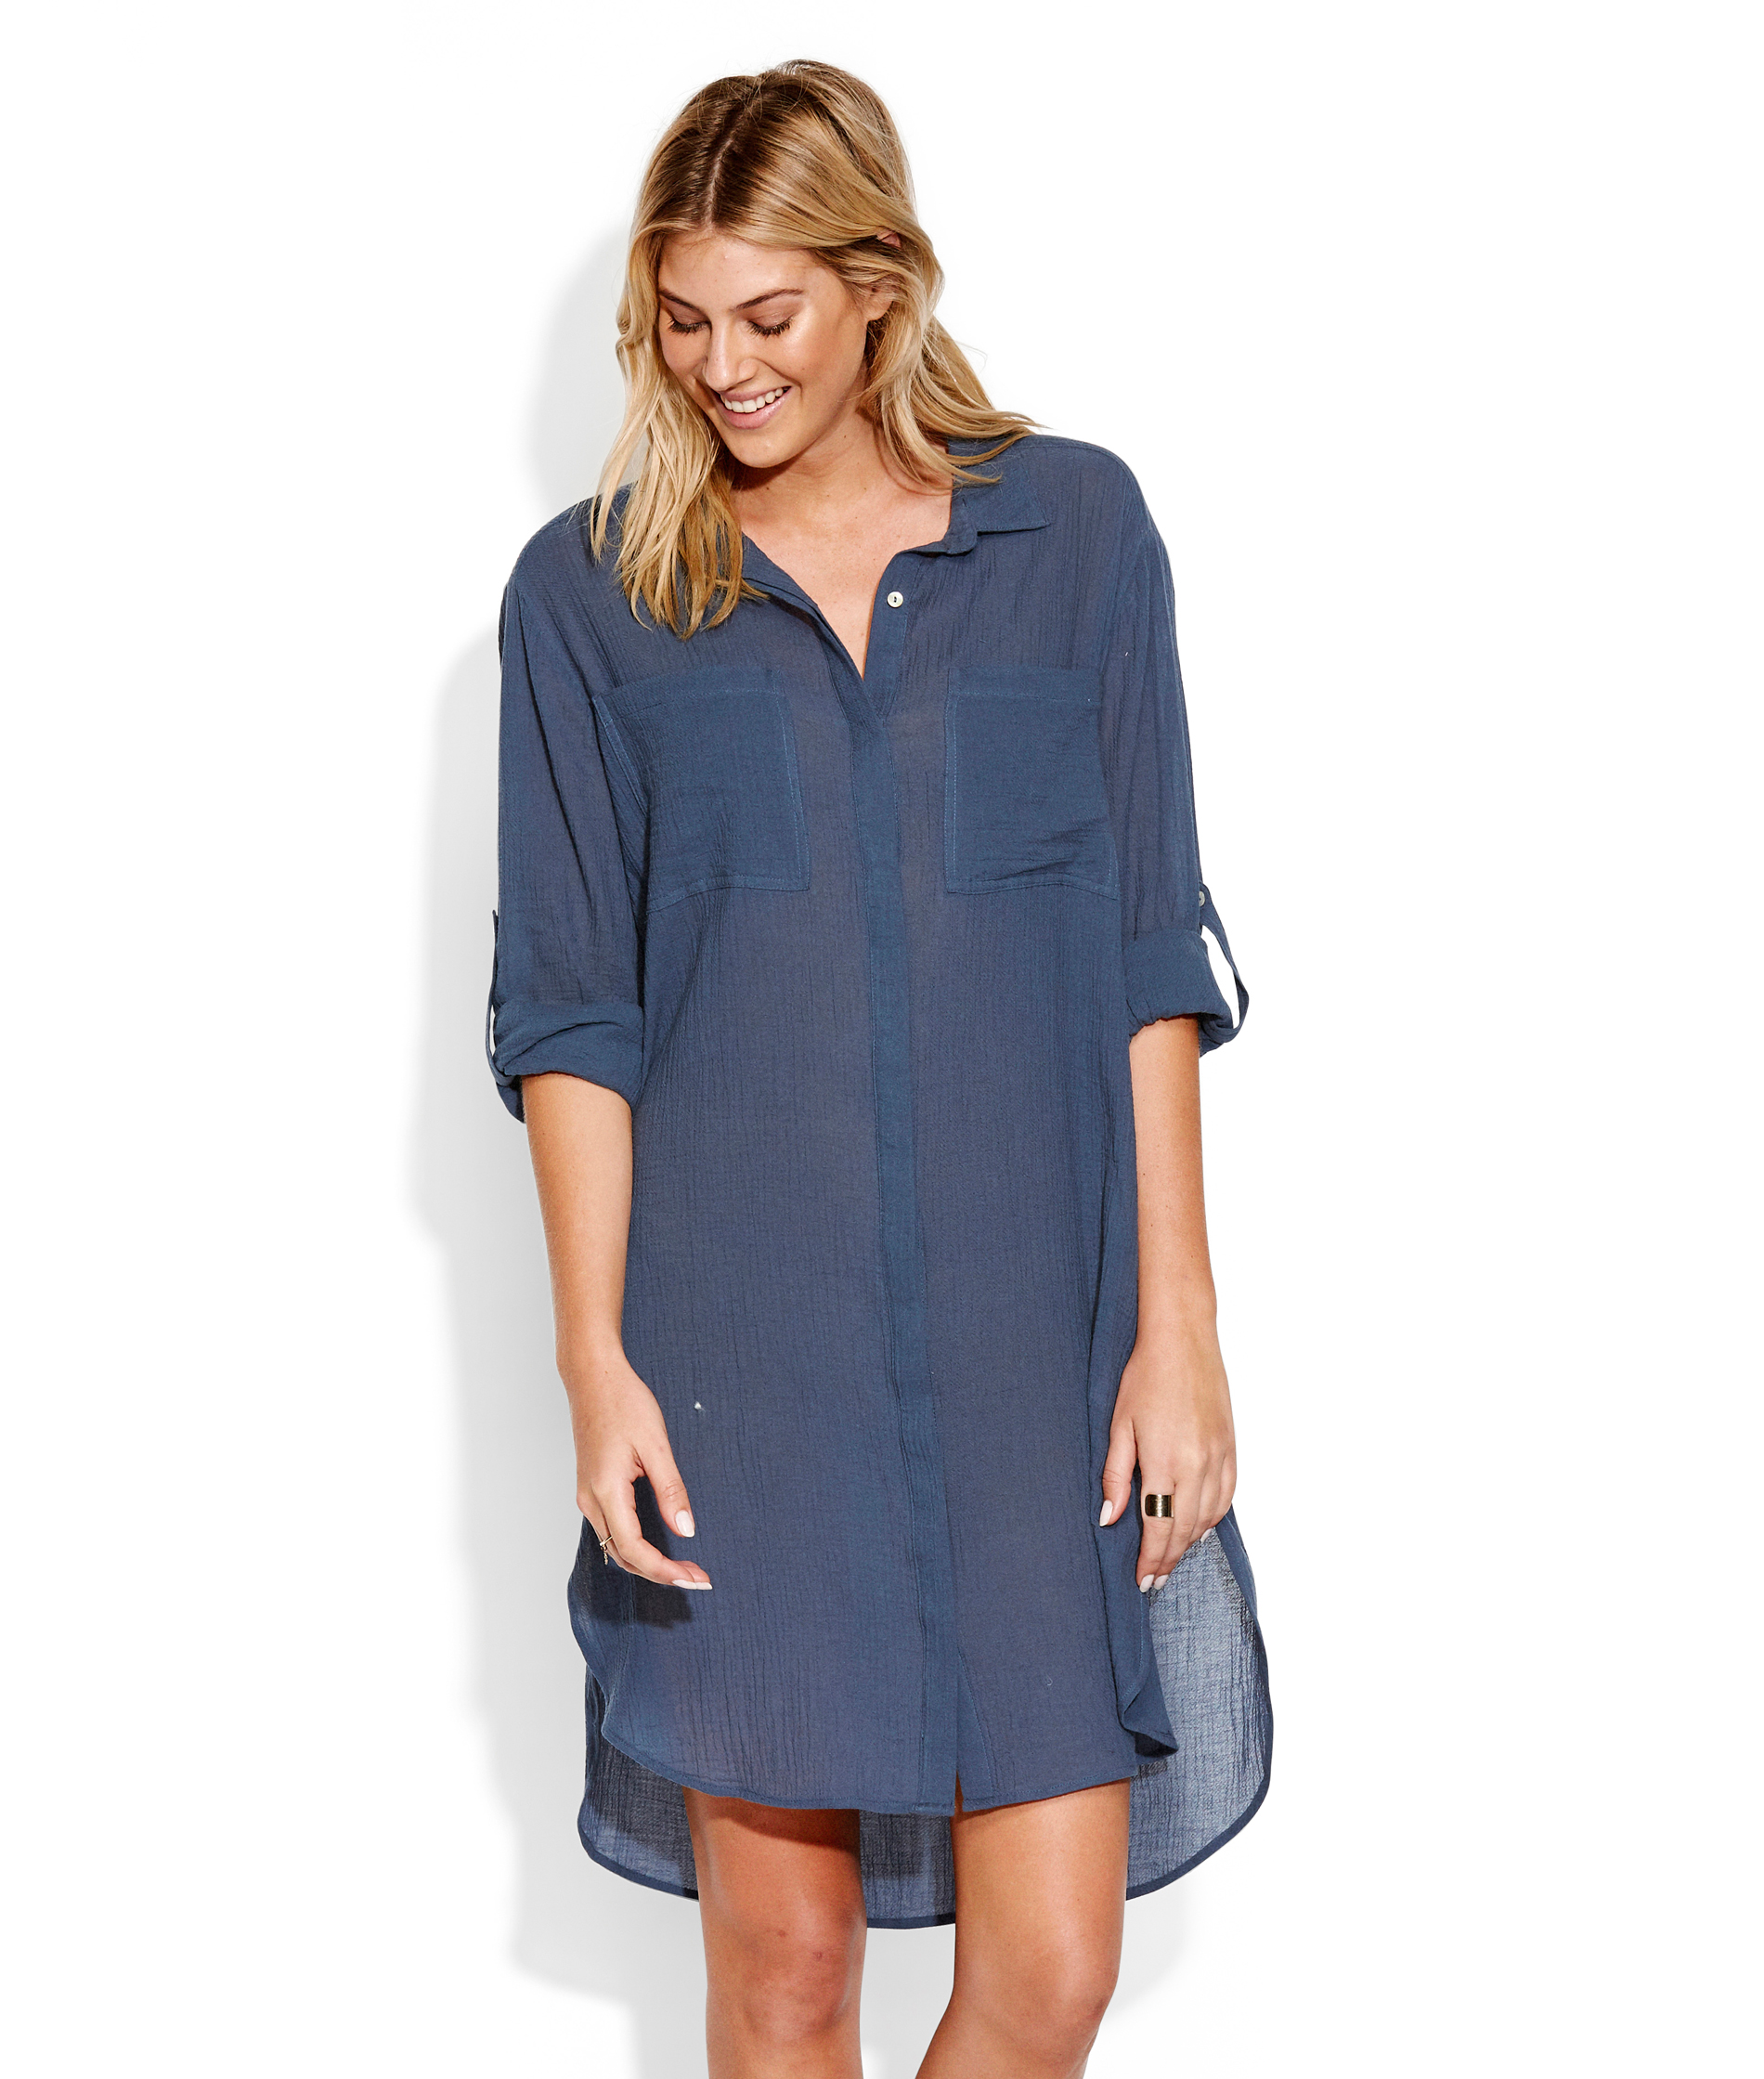 Seafolly Crinkle Twill Beach Shirt - Blueprint